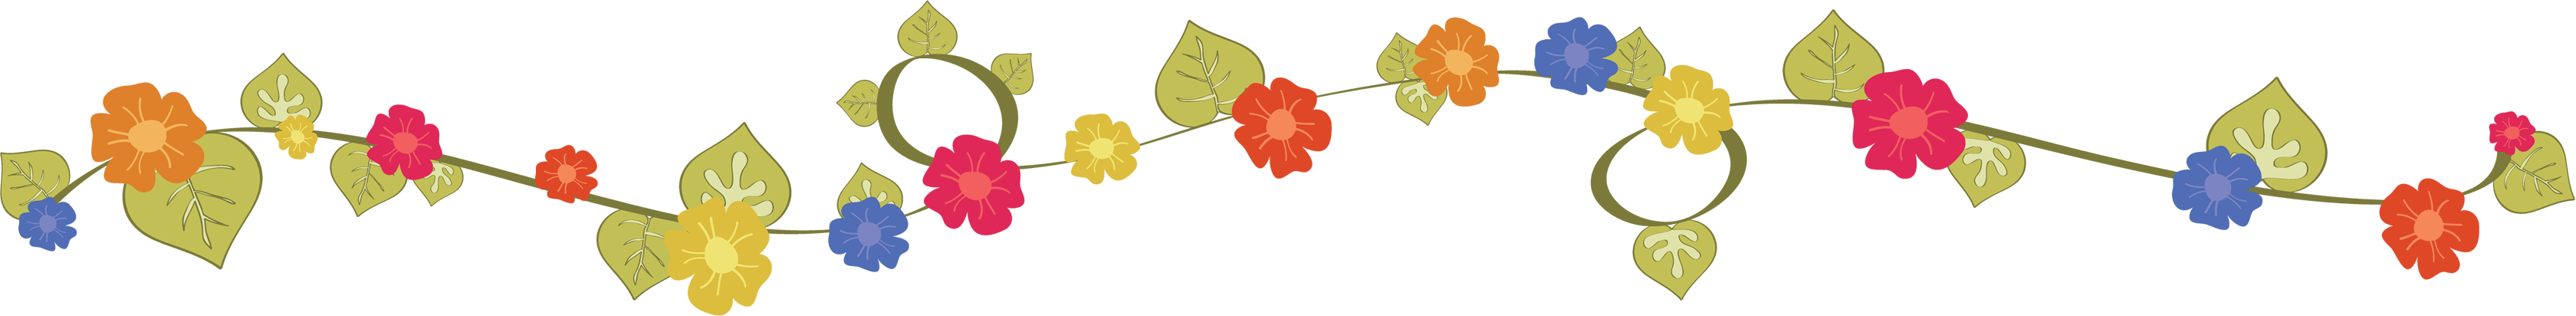 flower2567.png